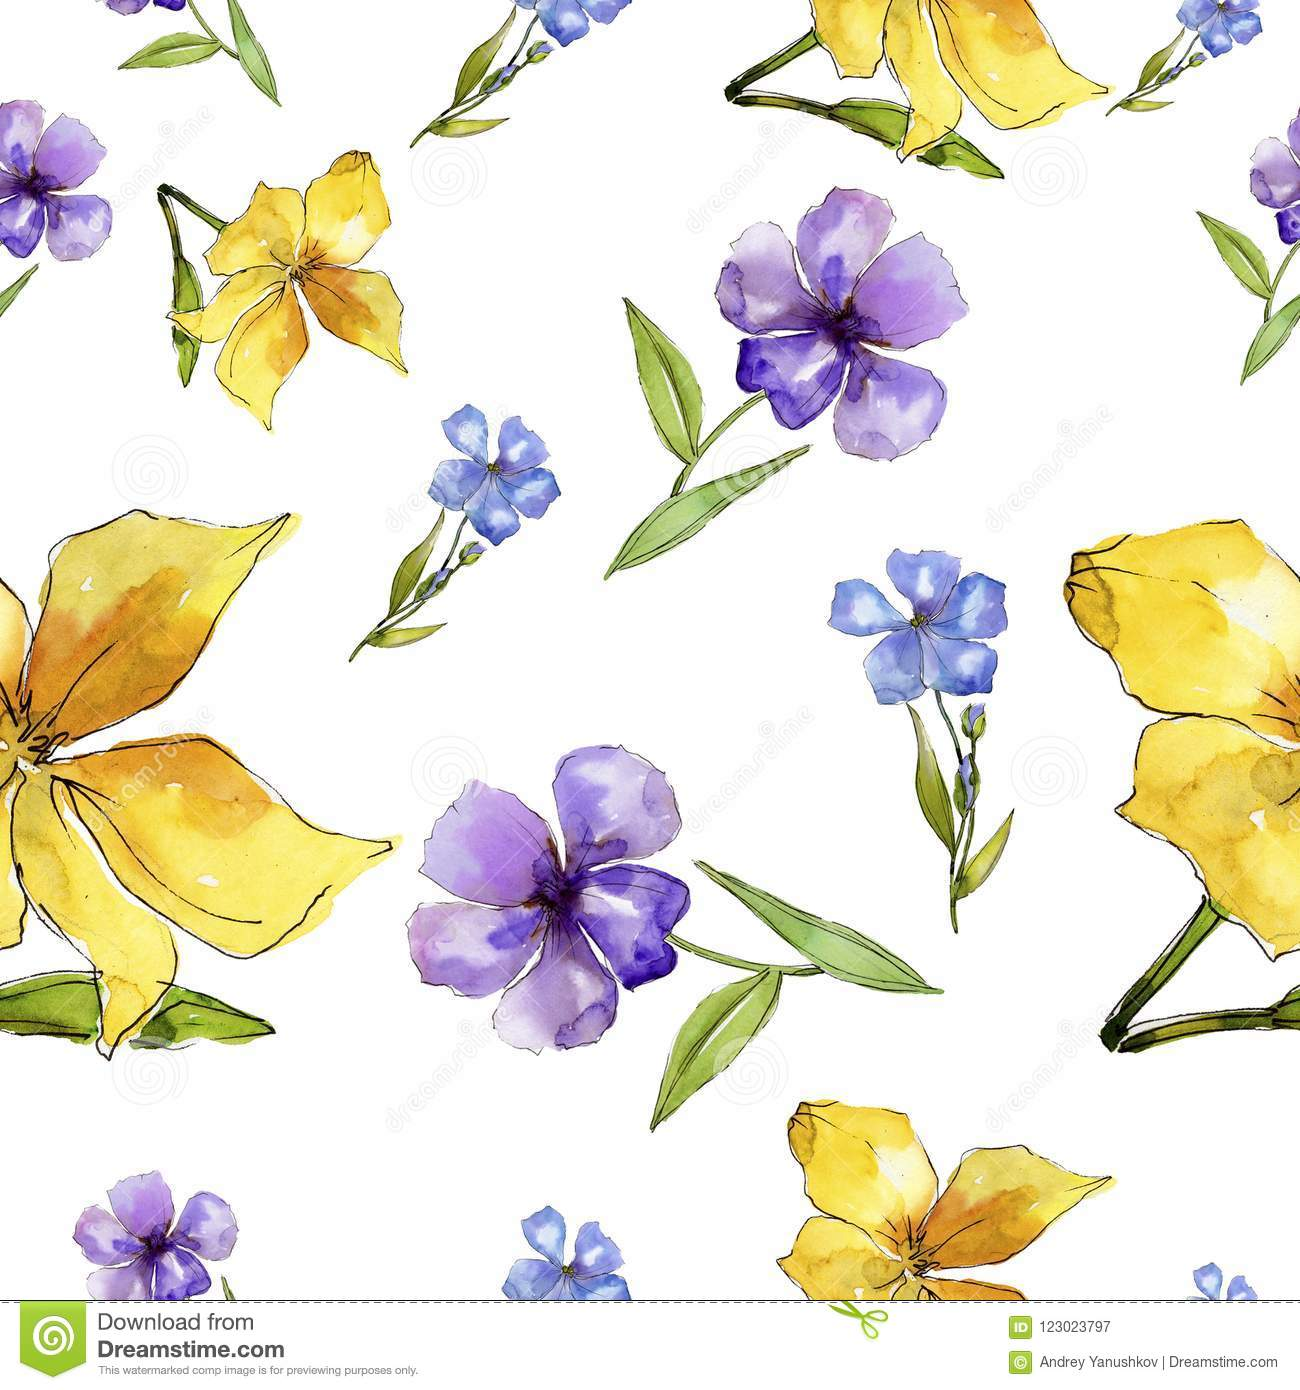 Watercolor Blue And Yellow Flax Flowers Floral Botanical Flower